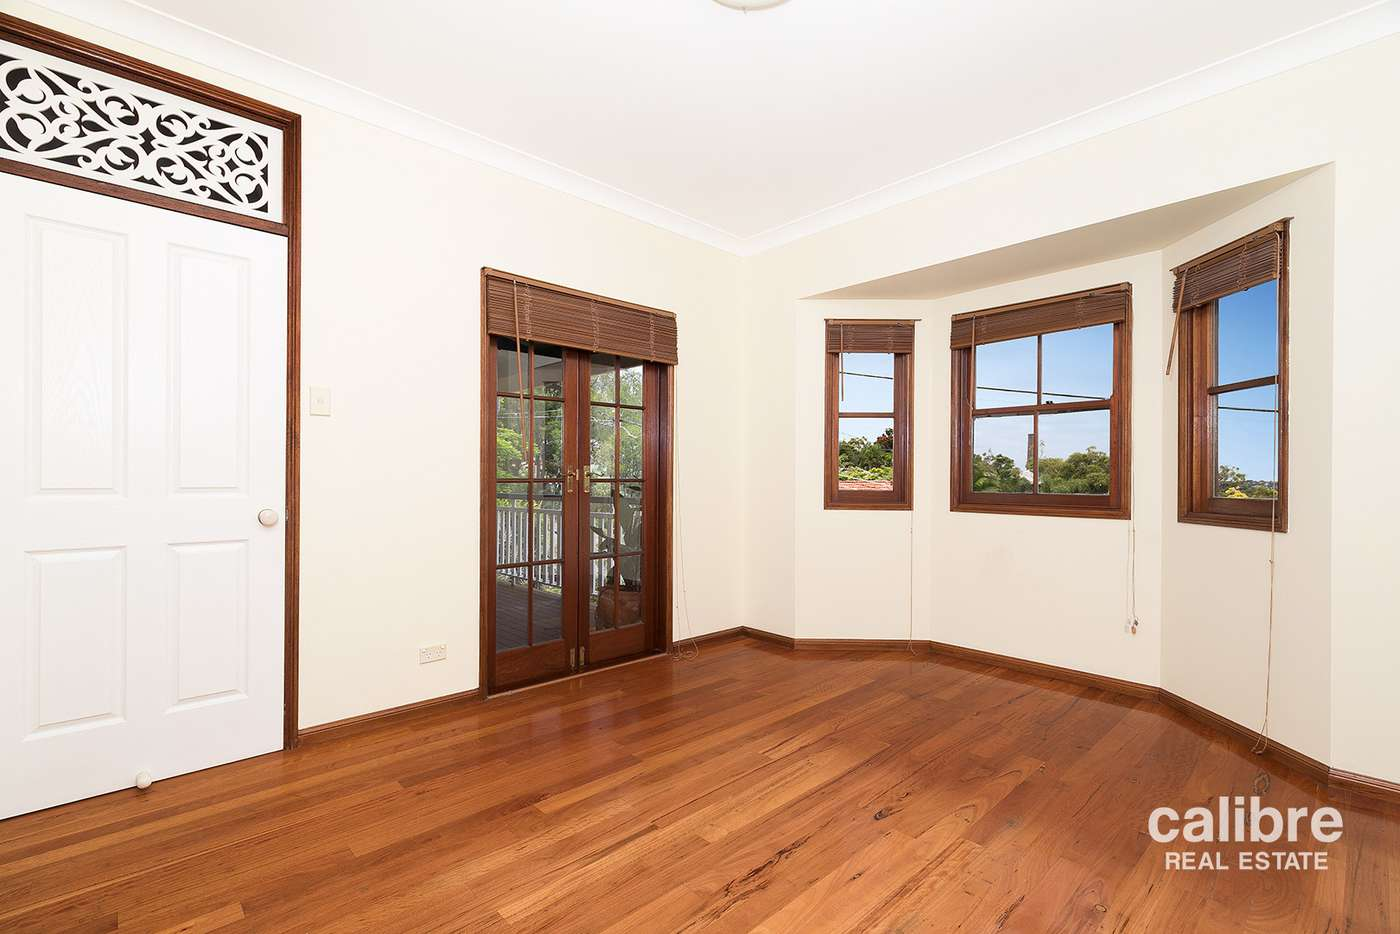 Seventh view of Homely house listing, 39 Hall Street, Alderley QLD 4051